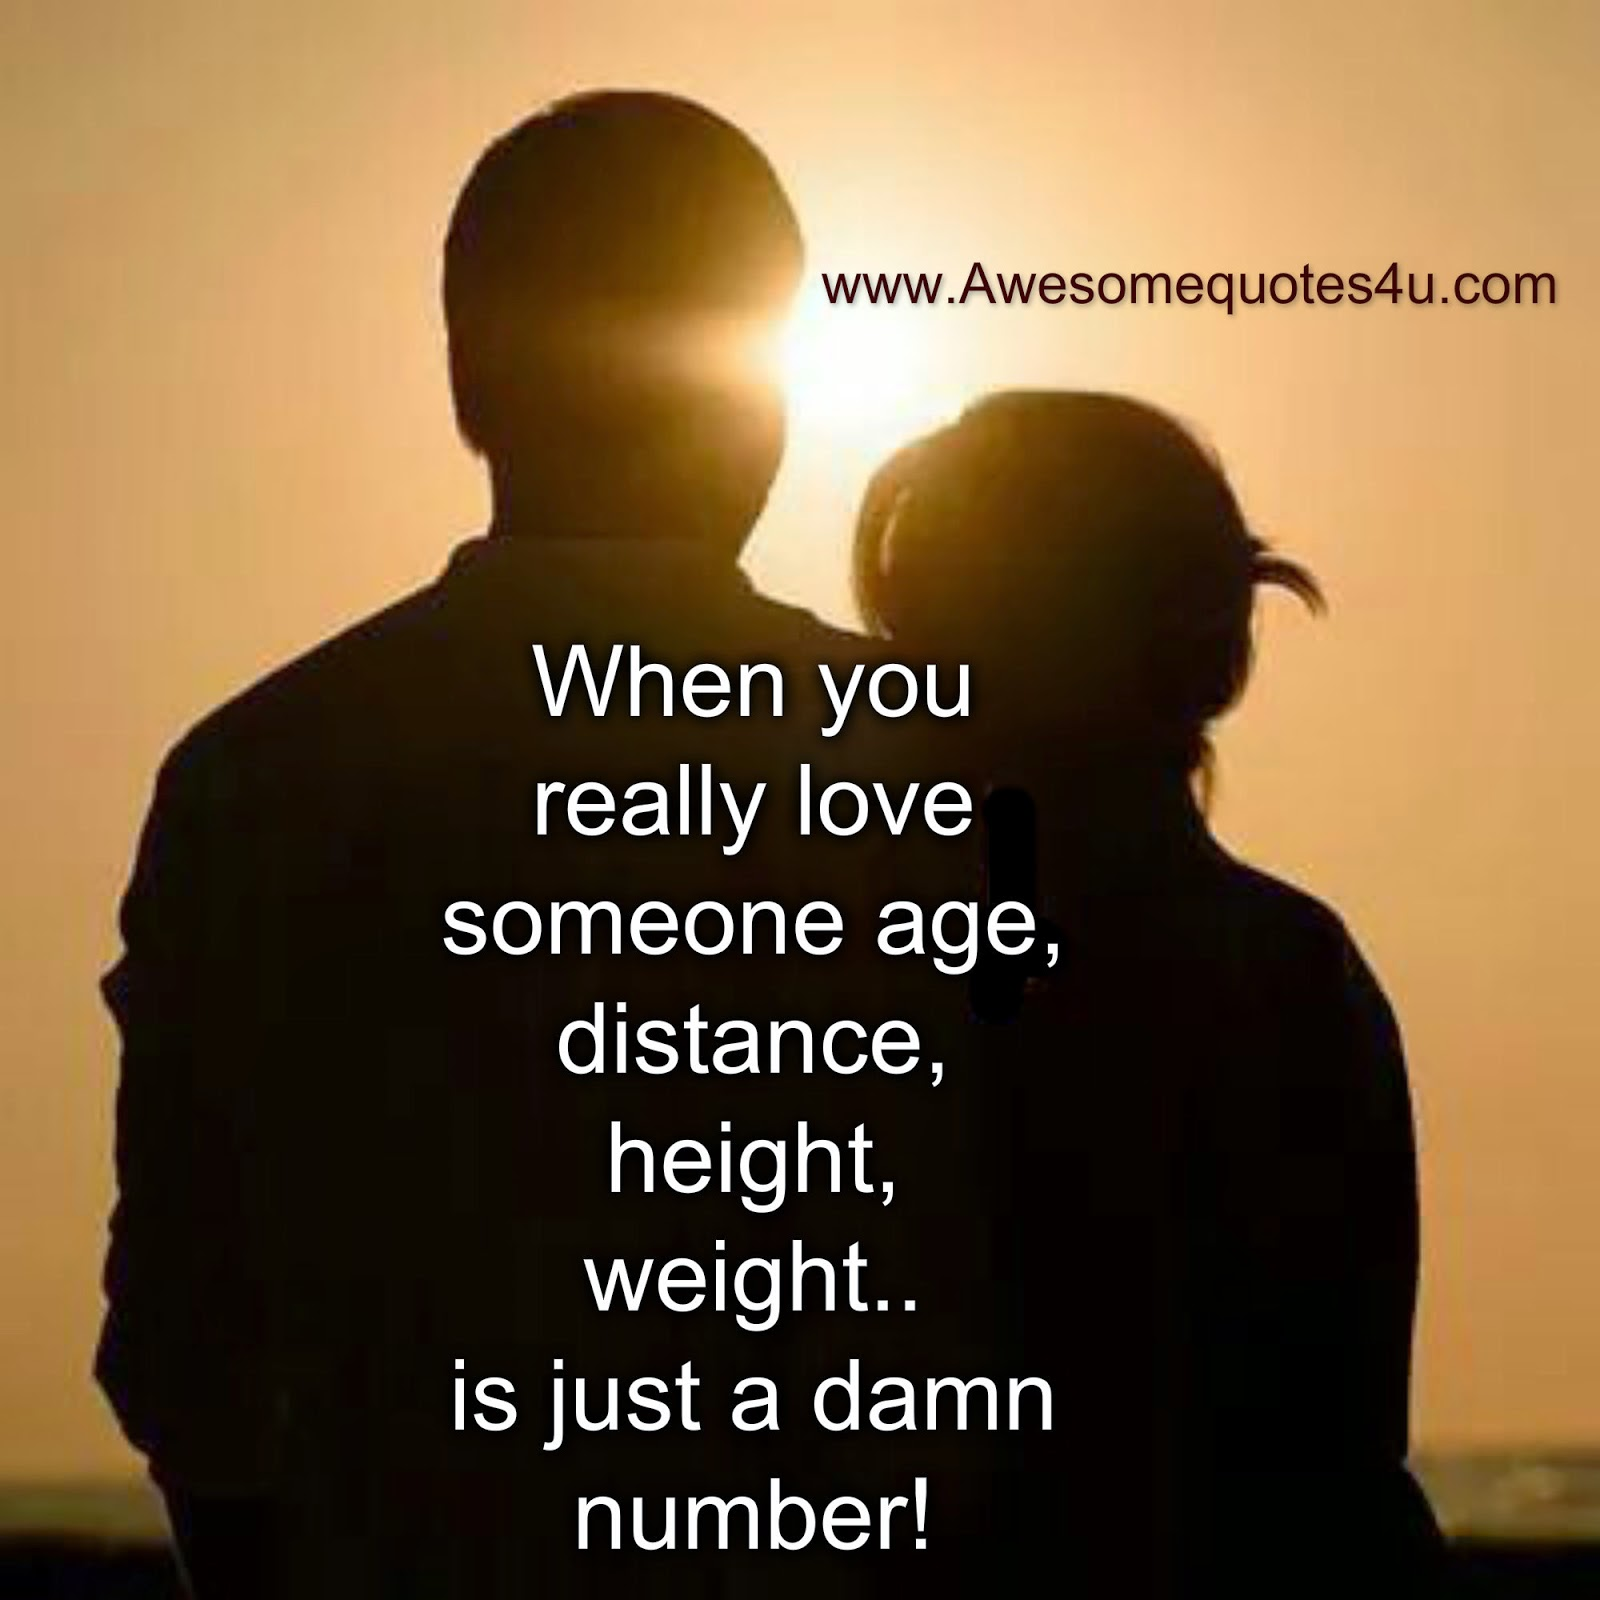 Awesome Quotes: When You Really Love Someone